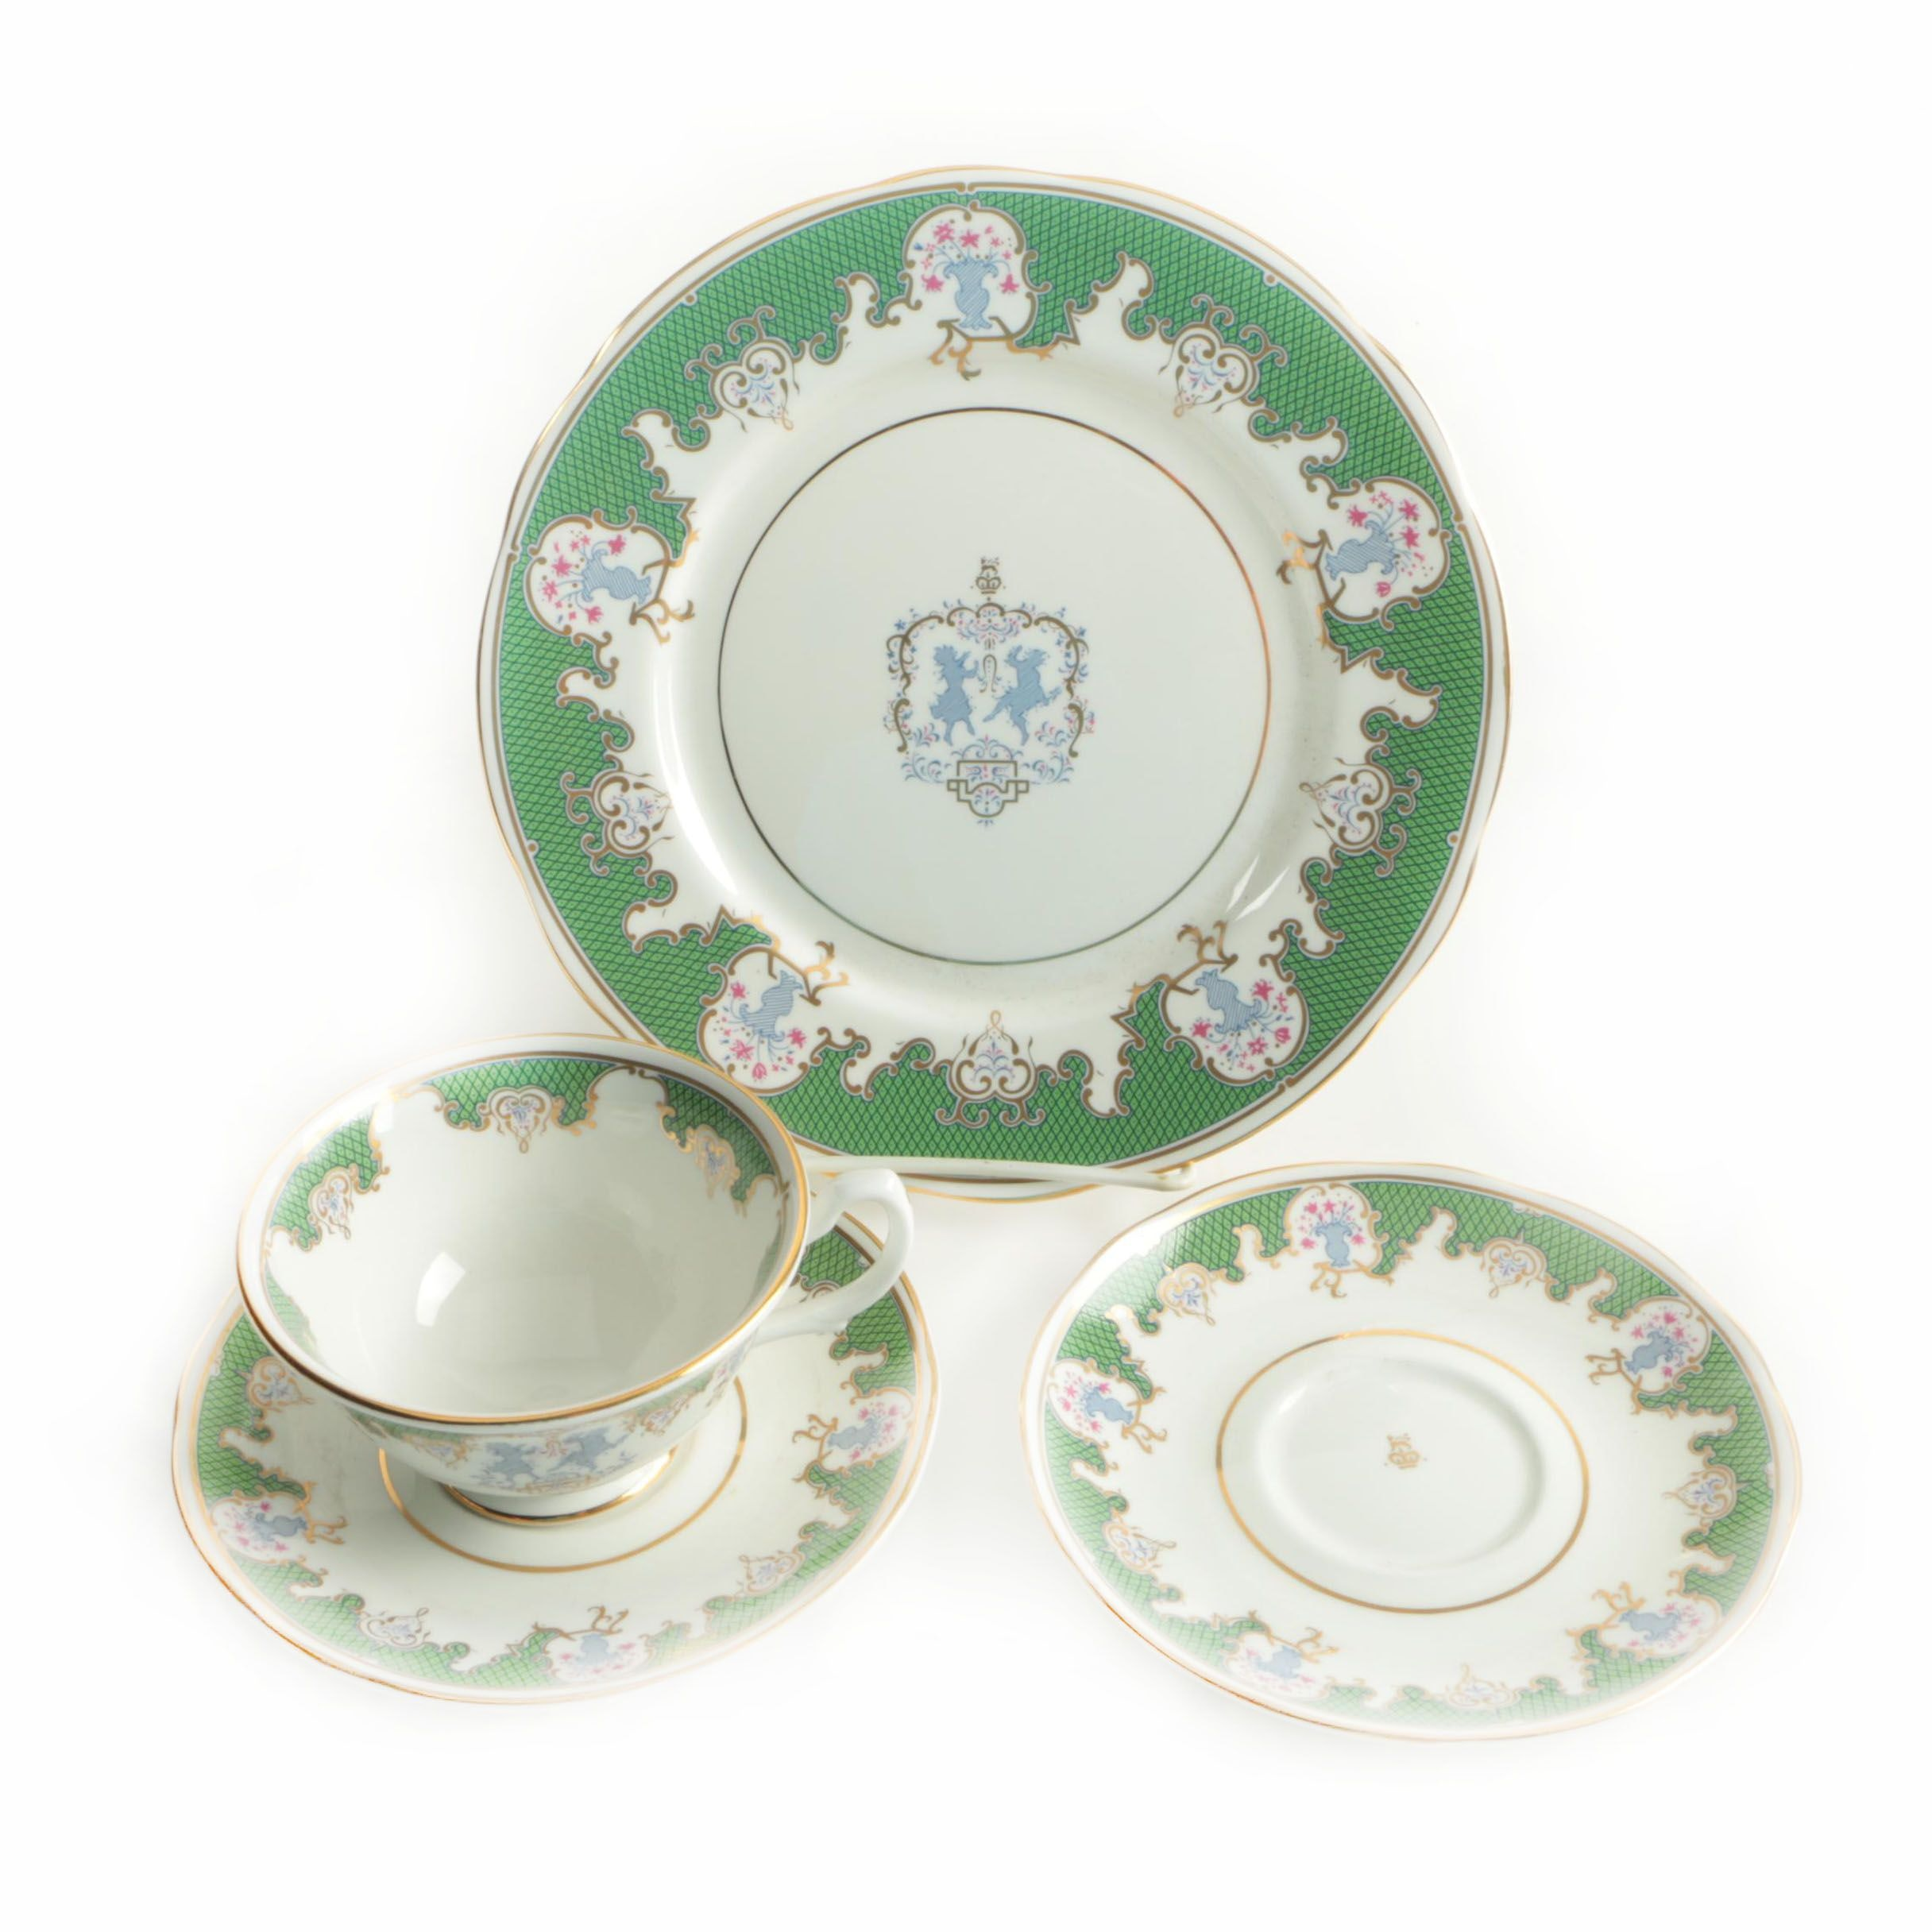 "1998 Royal Collection ""Buckingham Palace"" Serveware"